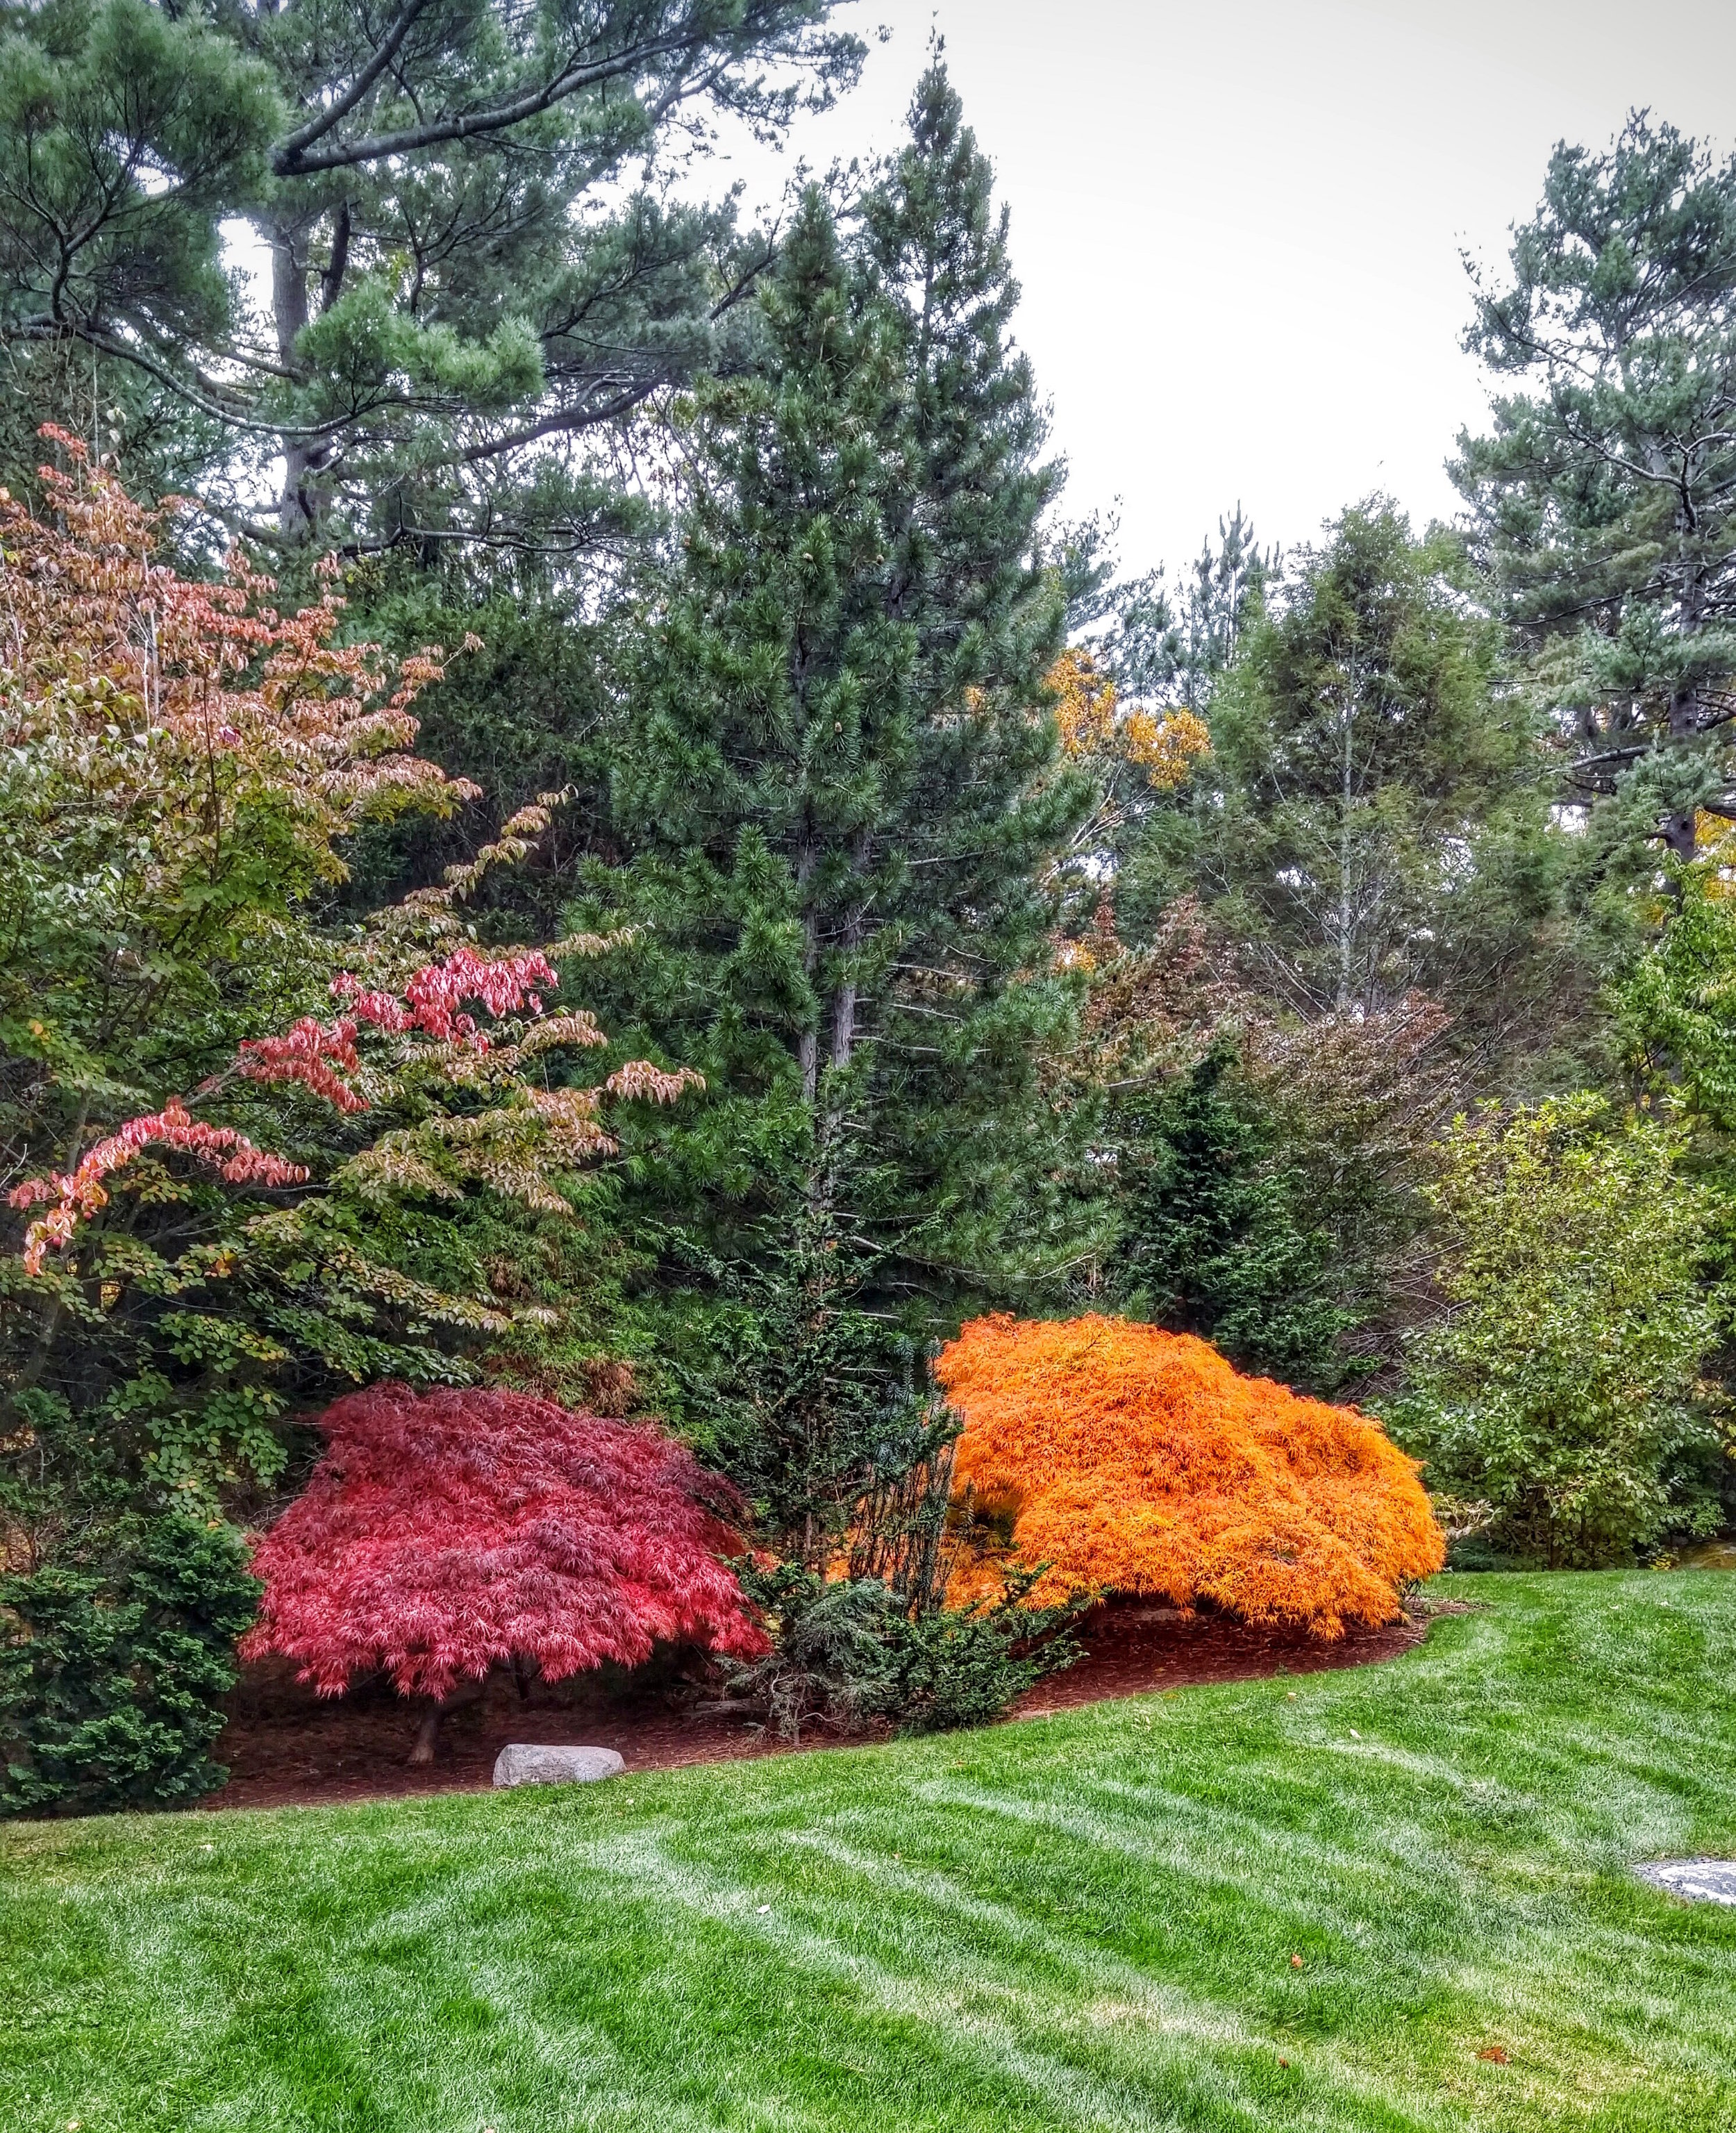 Landscape design utilizing Japanese maples for their vibrant fall colors.